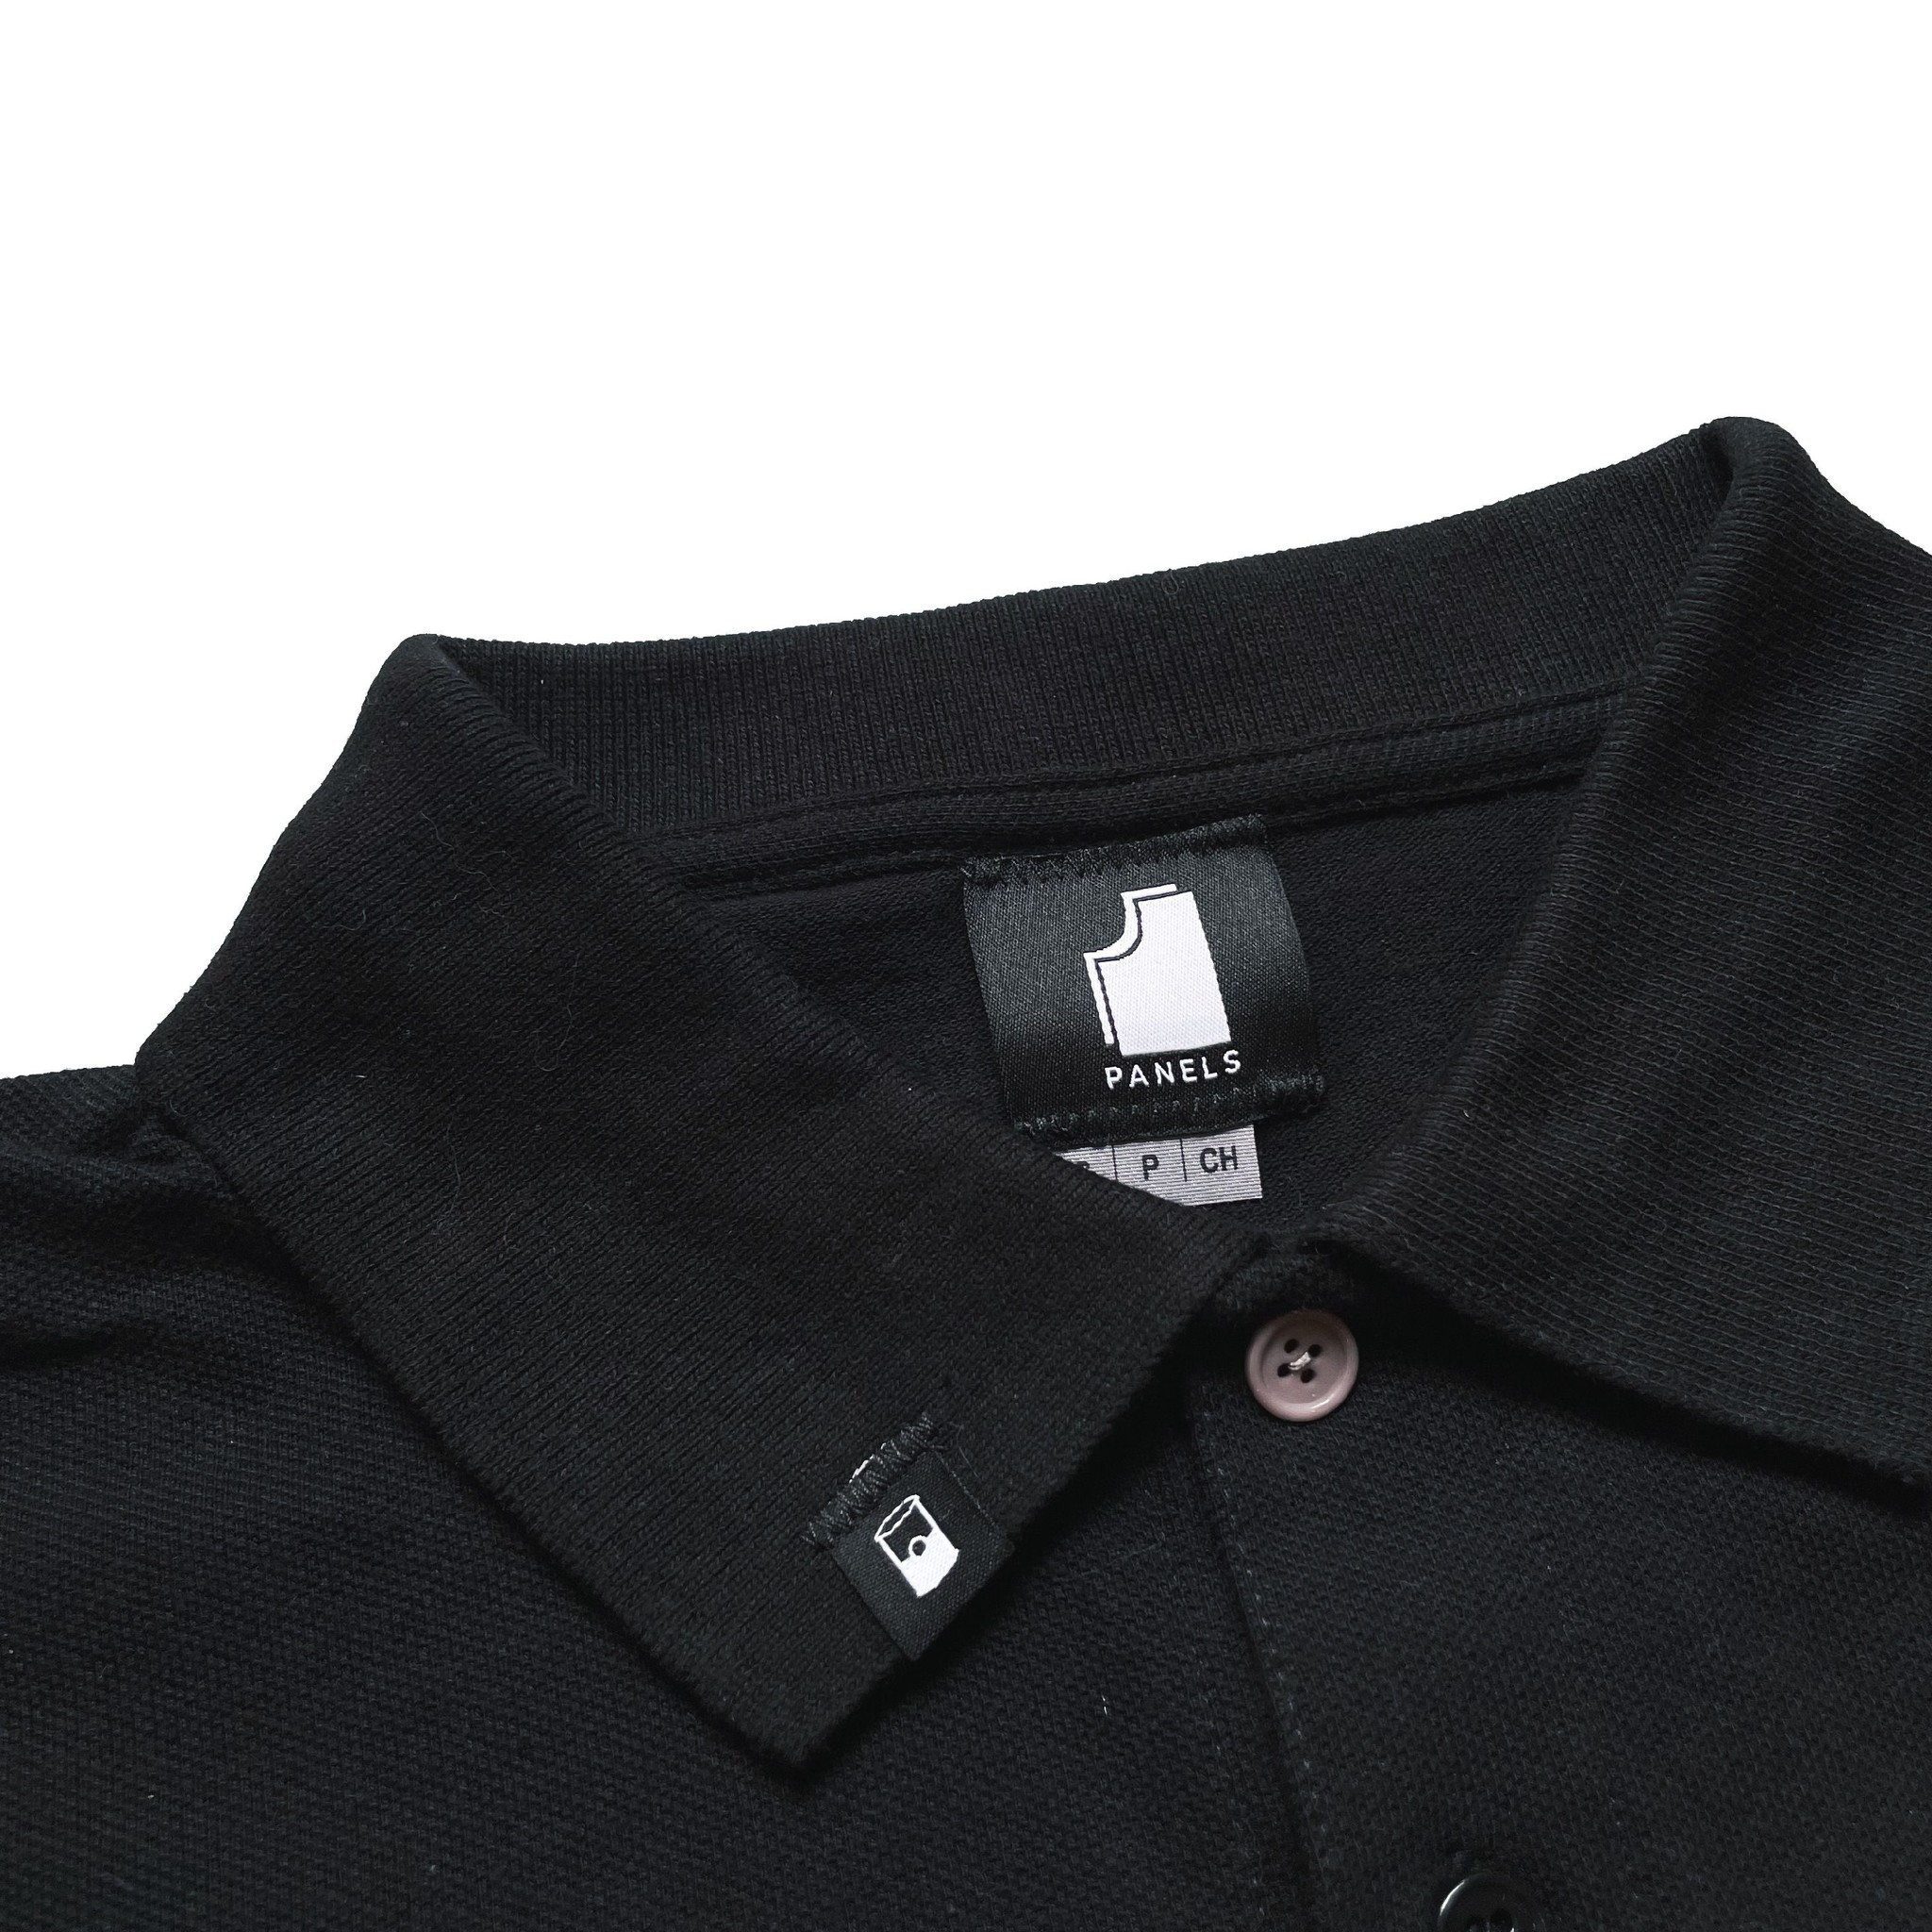 Panels Panels Campbell Can Polo Black